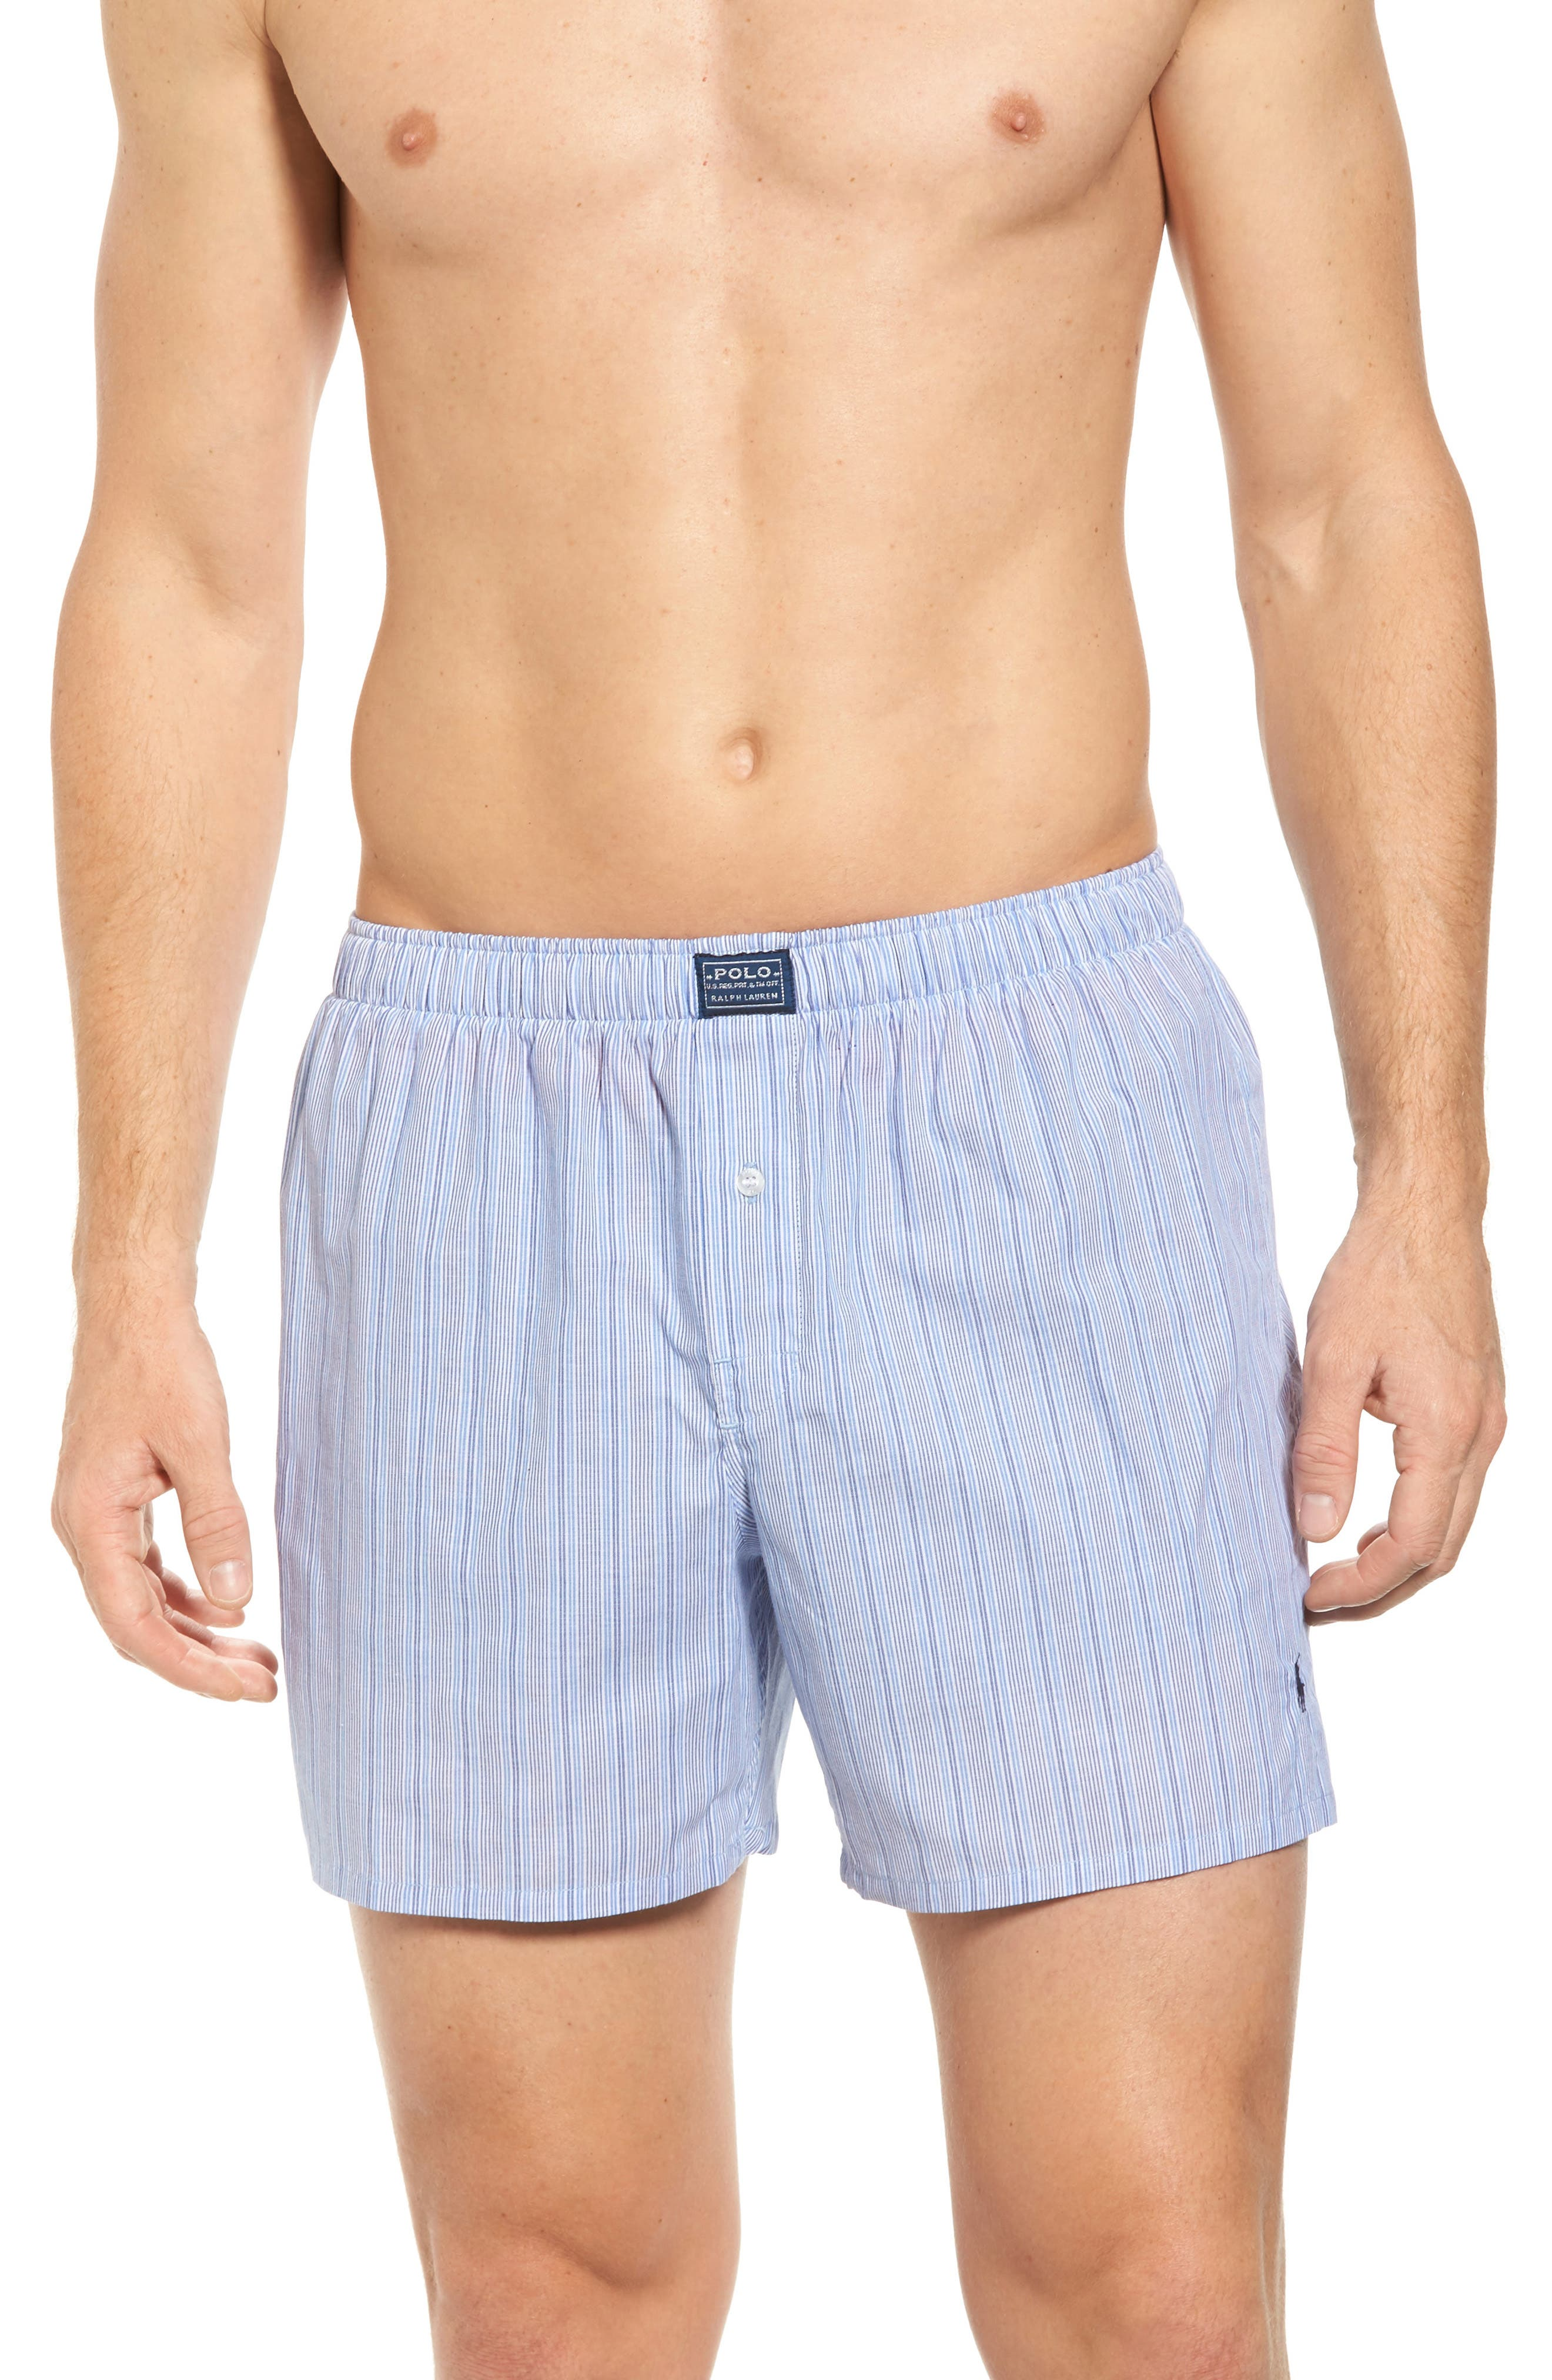 POLO RALPH LAUREN, Woven Boxer Shorts, Main thumbnail 1, color, ANDREW BLUE